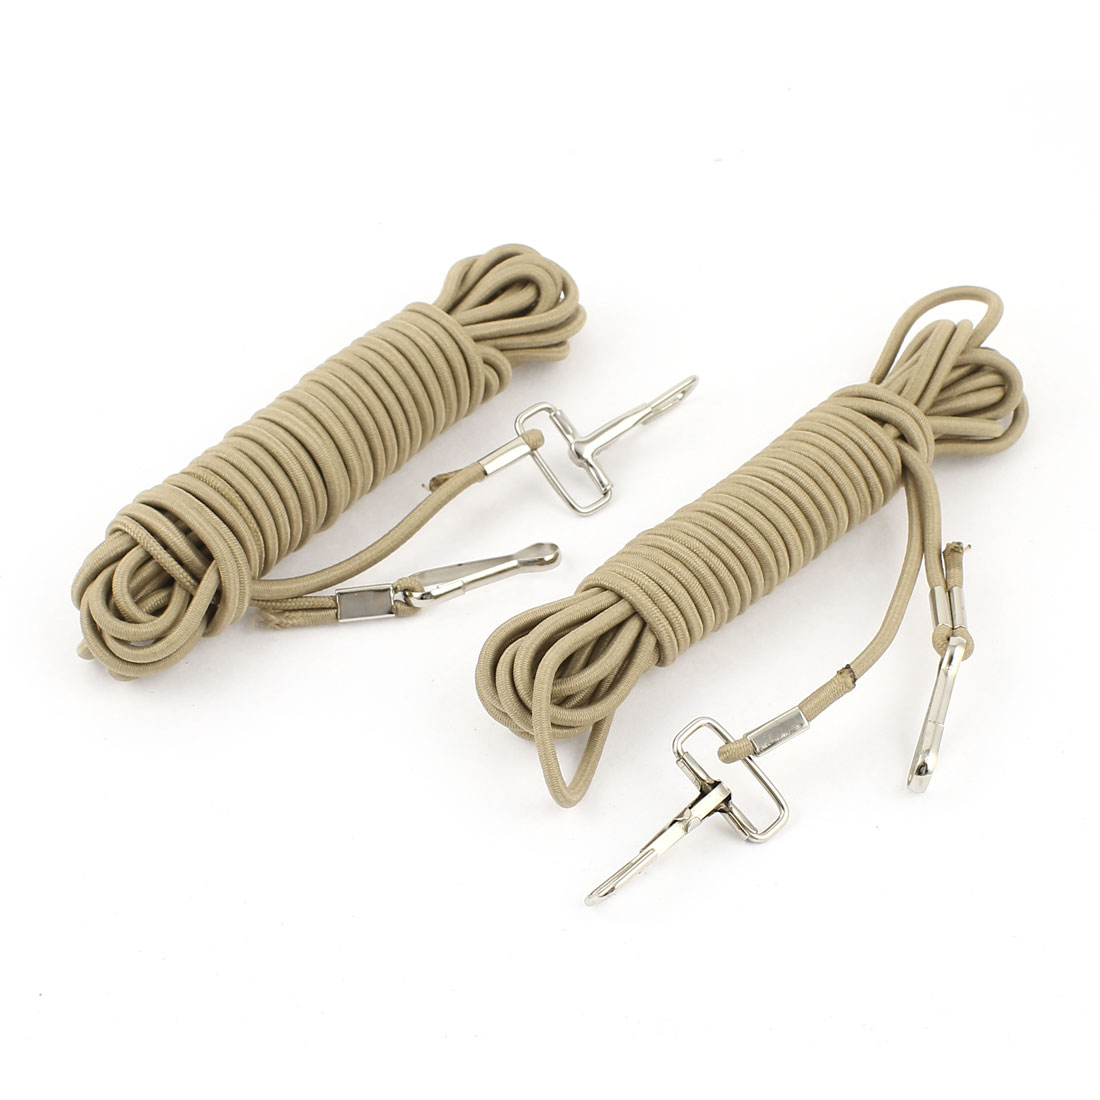 2 Pieces Fishing Pole Rod Protector Elastic Rubber Rope Line Light Gray 5M Length